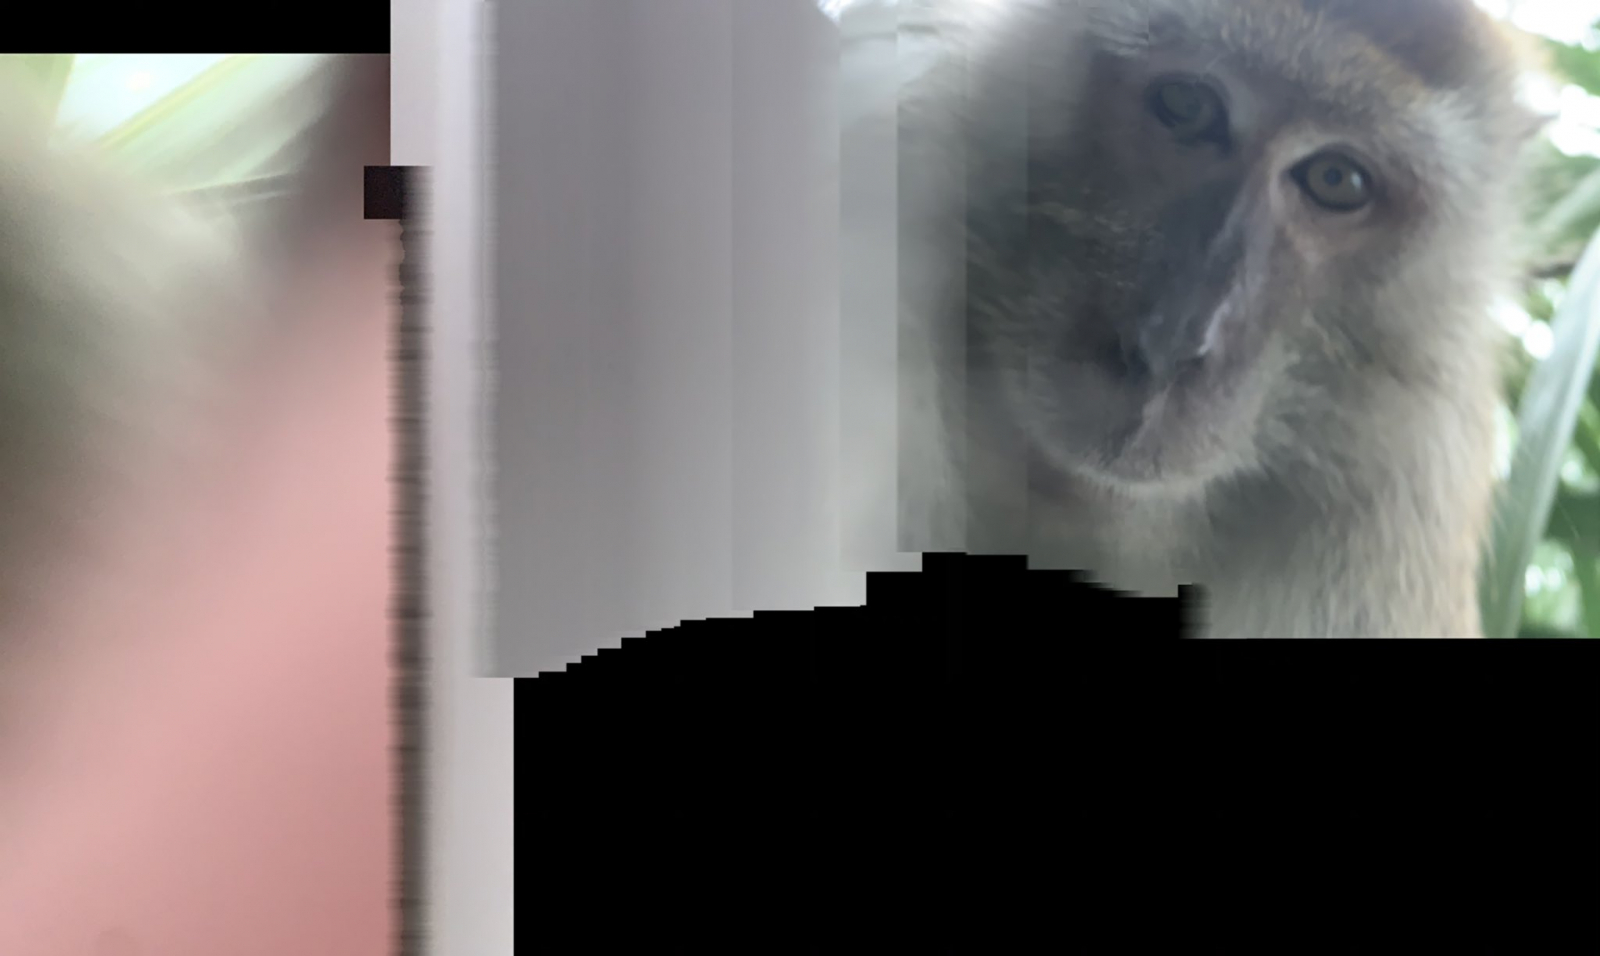 Just monkeying around: Primate steals phone from sleeping student, then takes selfies